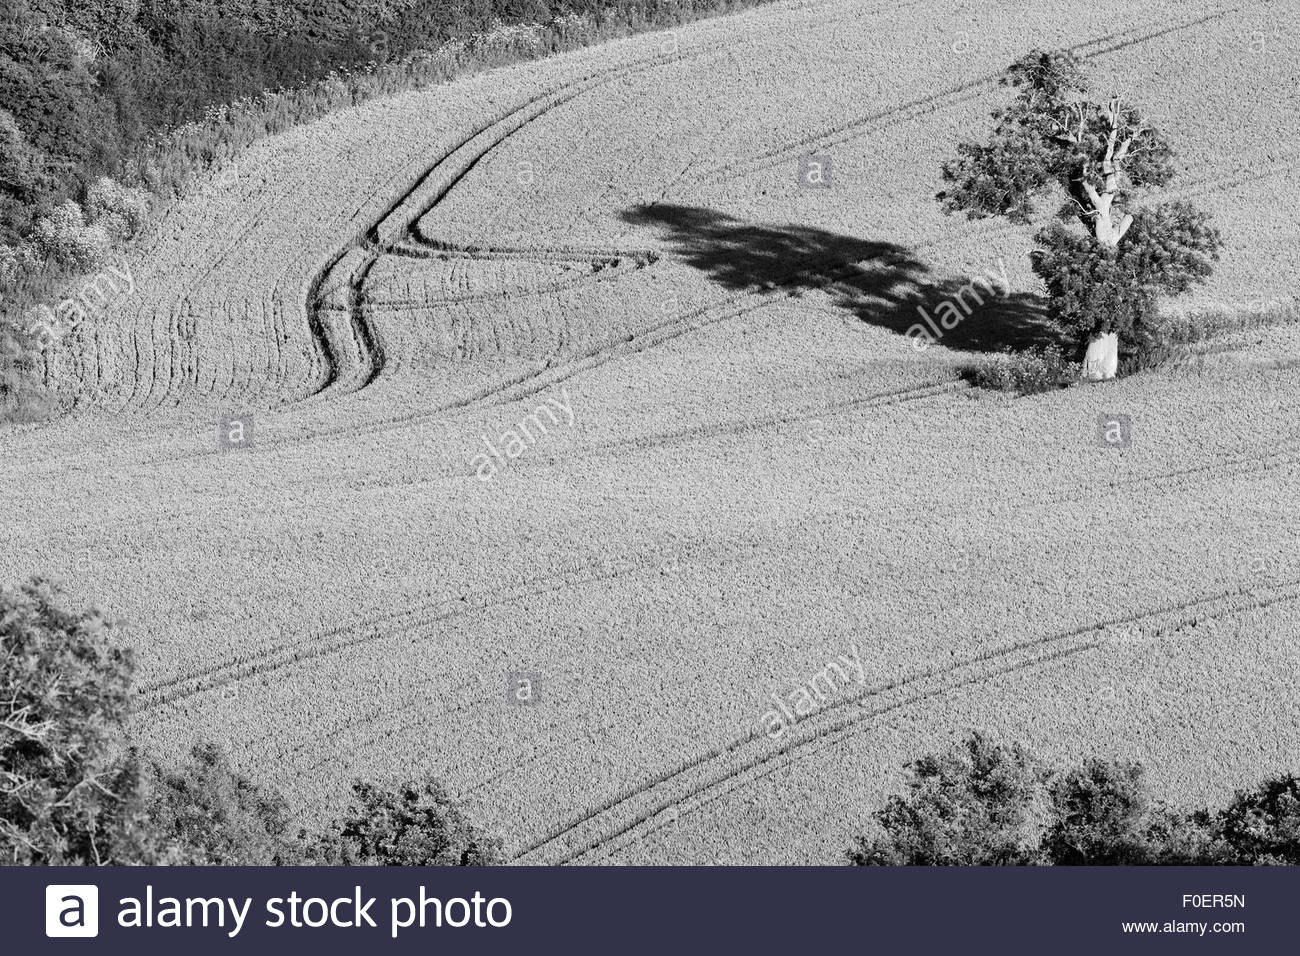 A view of a lone tree in a field of wheat. - Stock Image